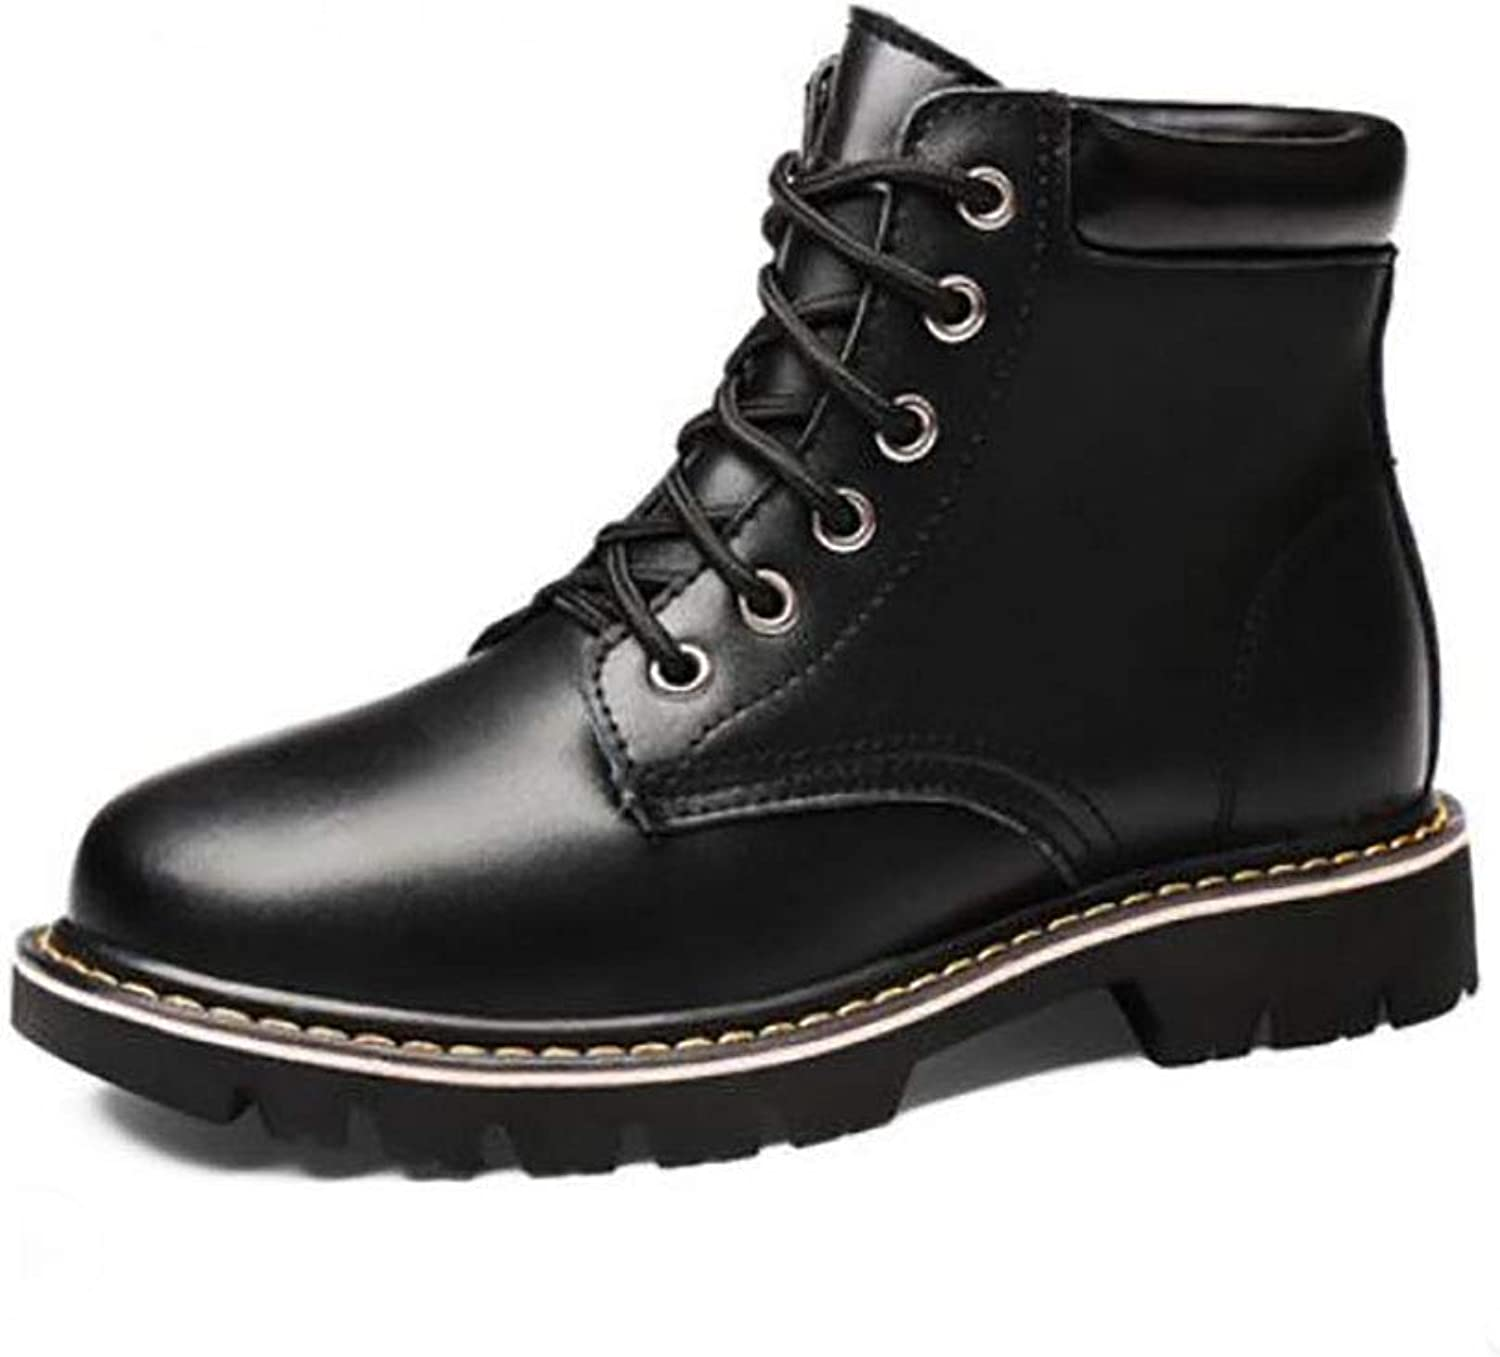 Women's shoes Winter Martin Boots Women's Booties Student Autumn and Winter Women's shoes Leather shoes Large Size Flat Women's Boots (color   B, Size   39)